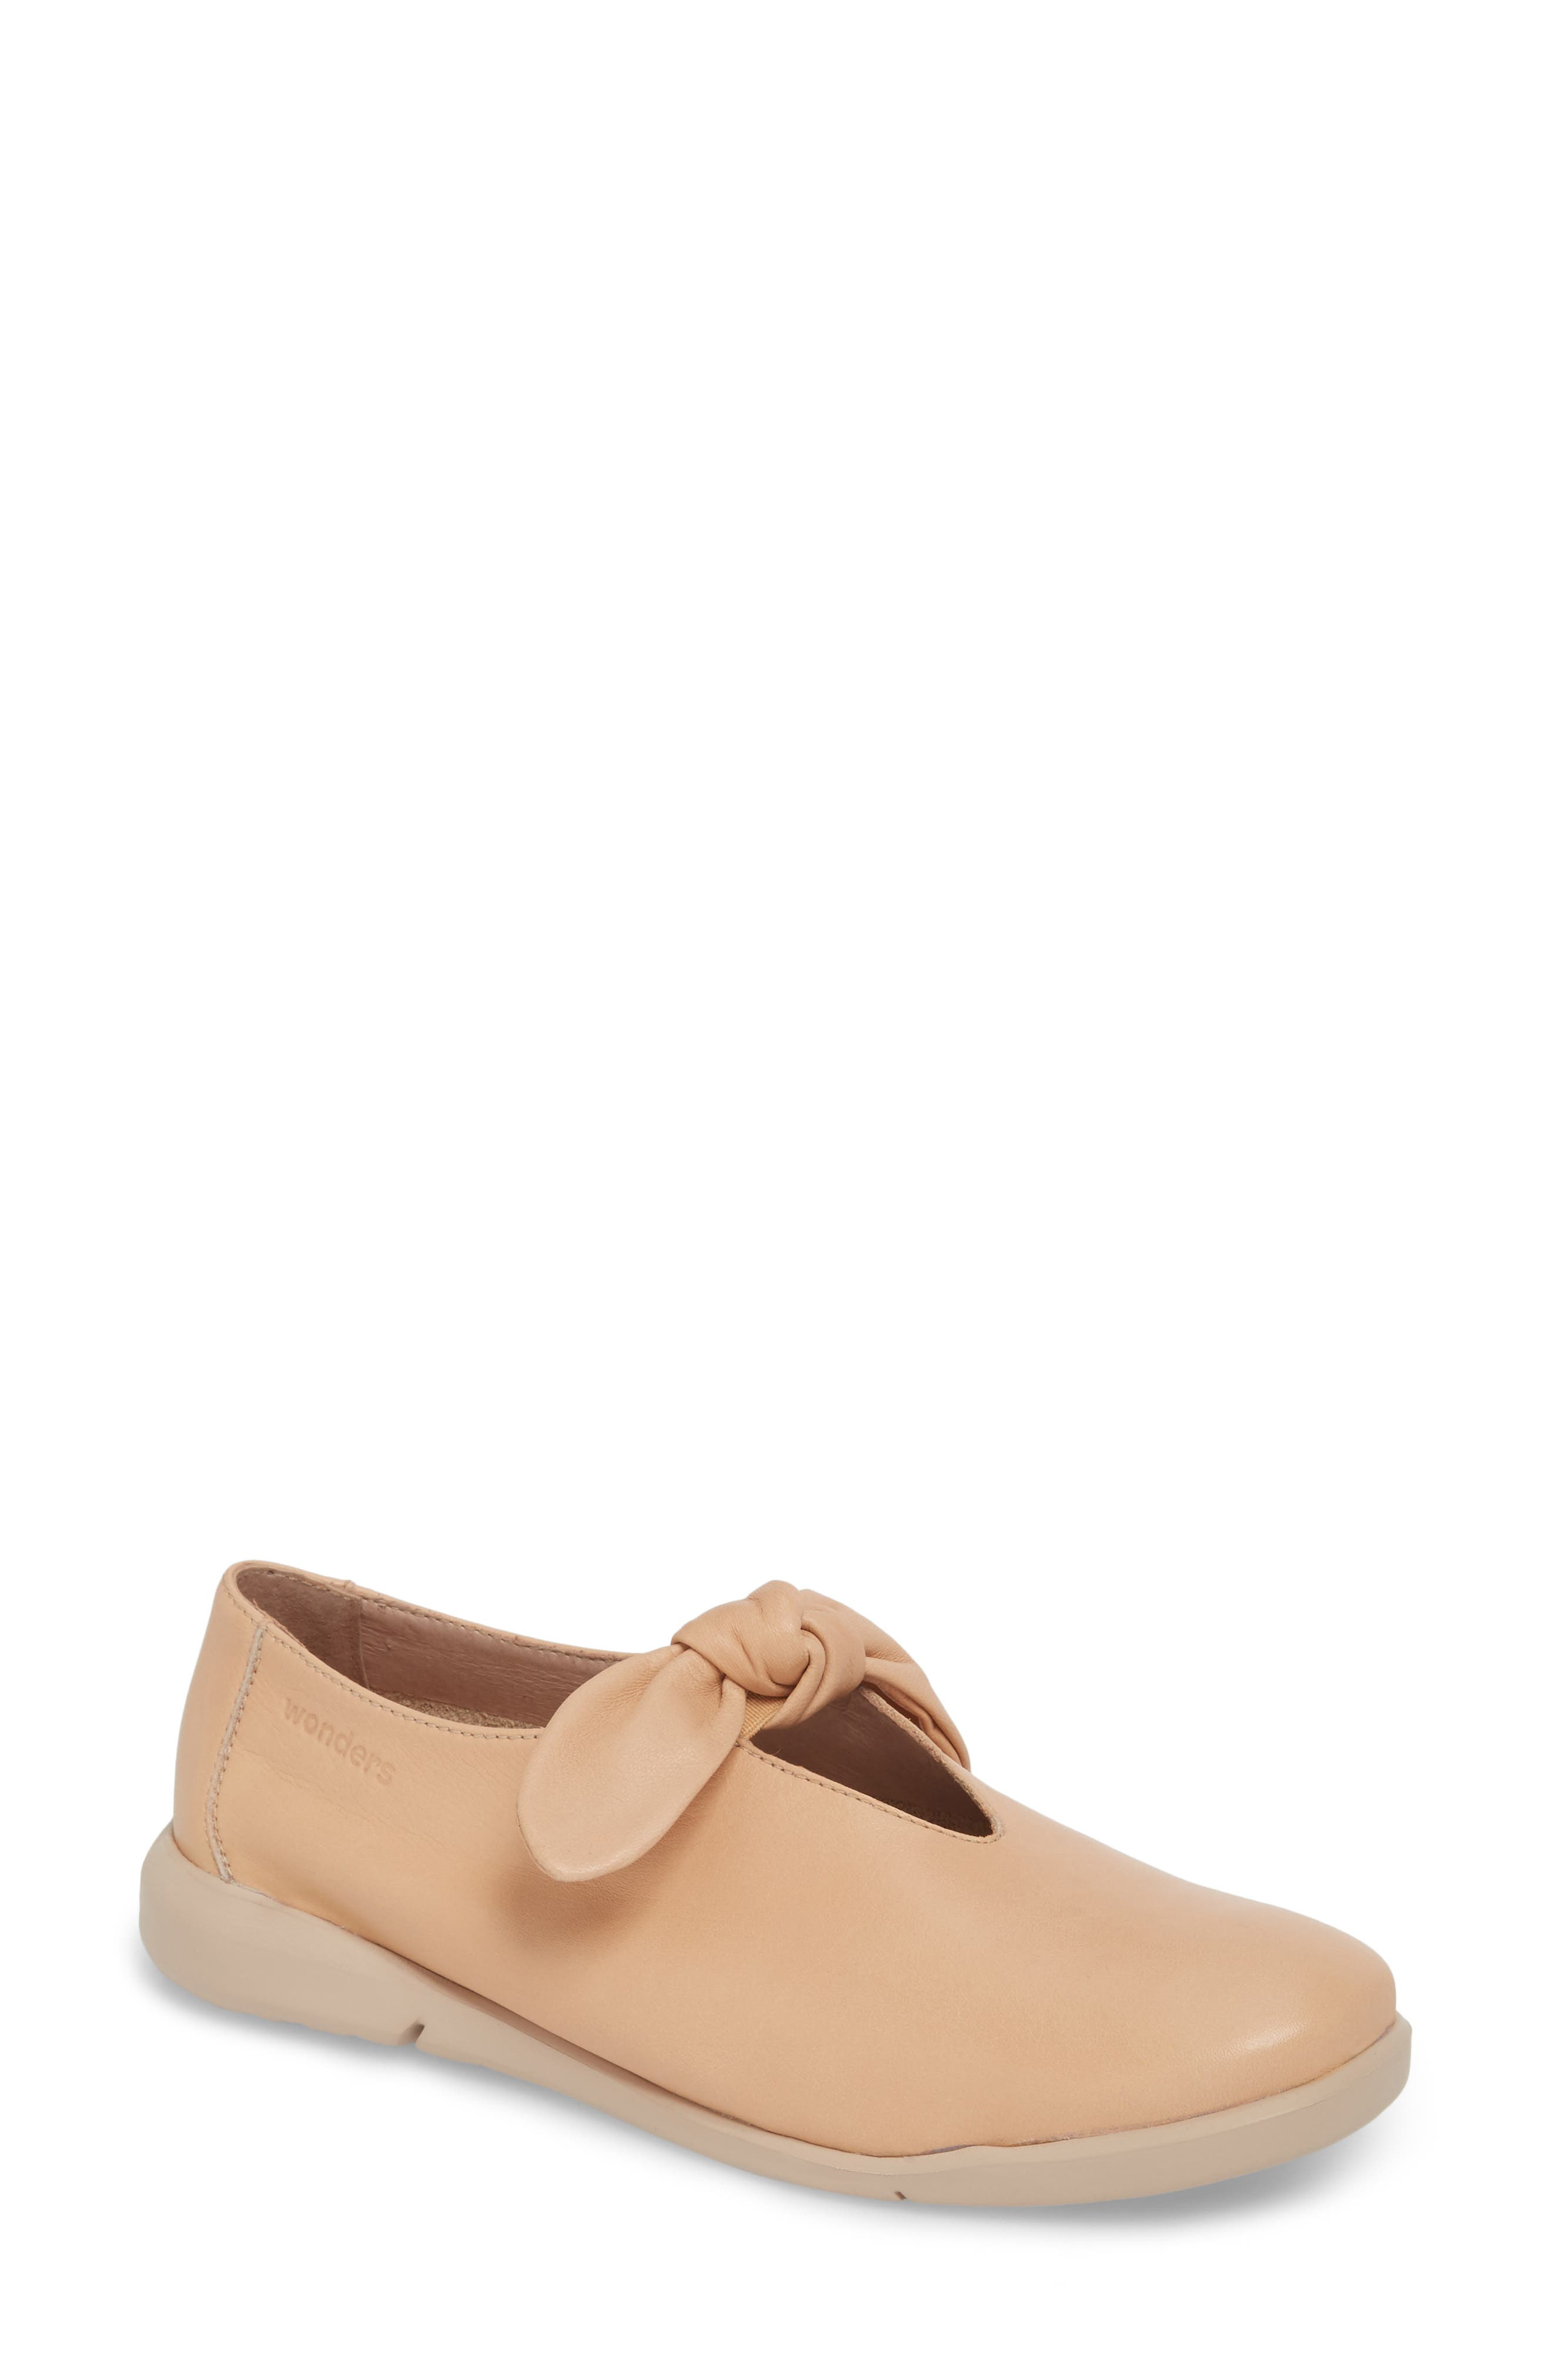 Knotted Mary Jane Flat,                             Main thumbnail 1, color,                             PALO BEIGE LEATHER